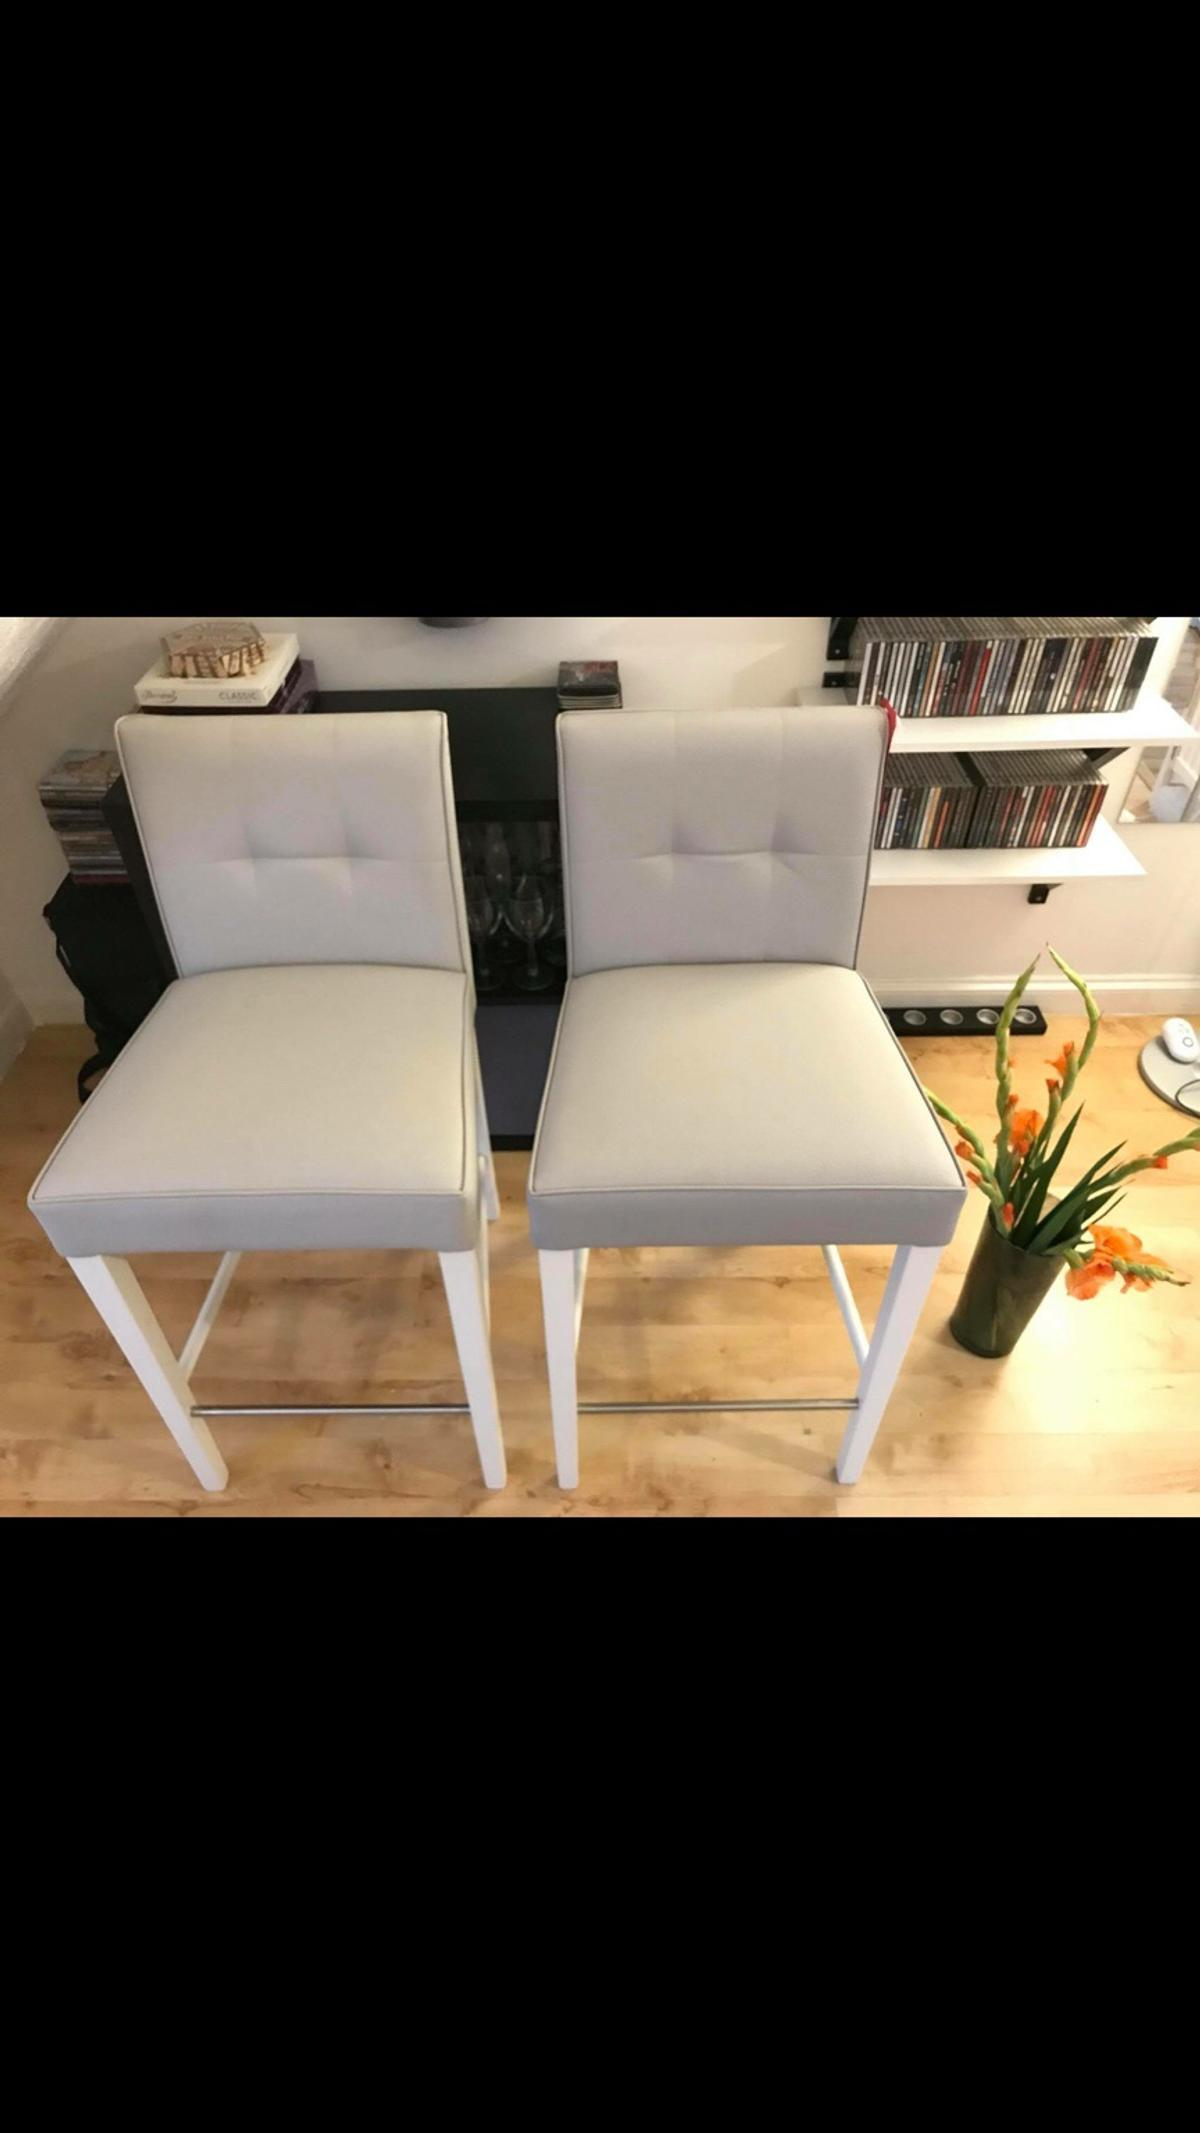 Magnificent John Lewis Simone Faux Leather Bar Chair In Luton For Gmtry Best Dining Table And Chair Ideas Images Gmtryco